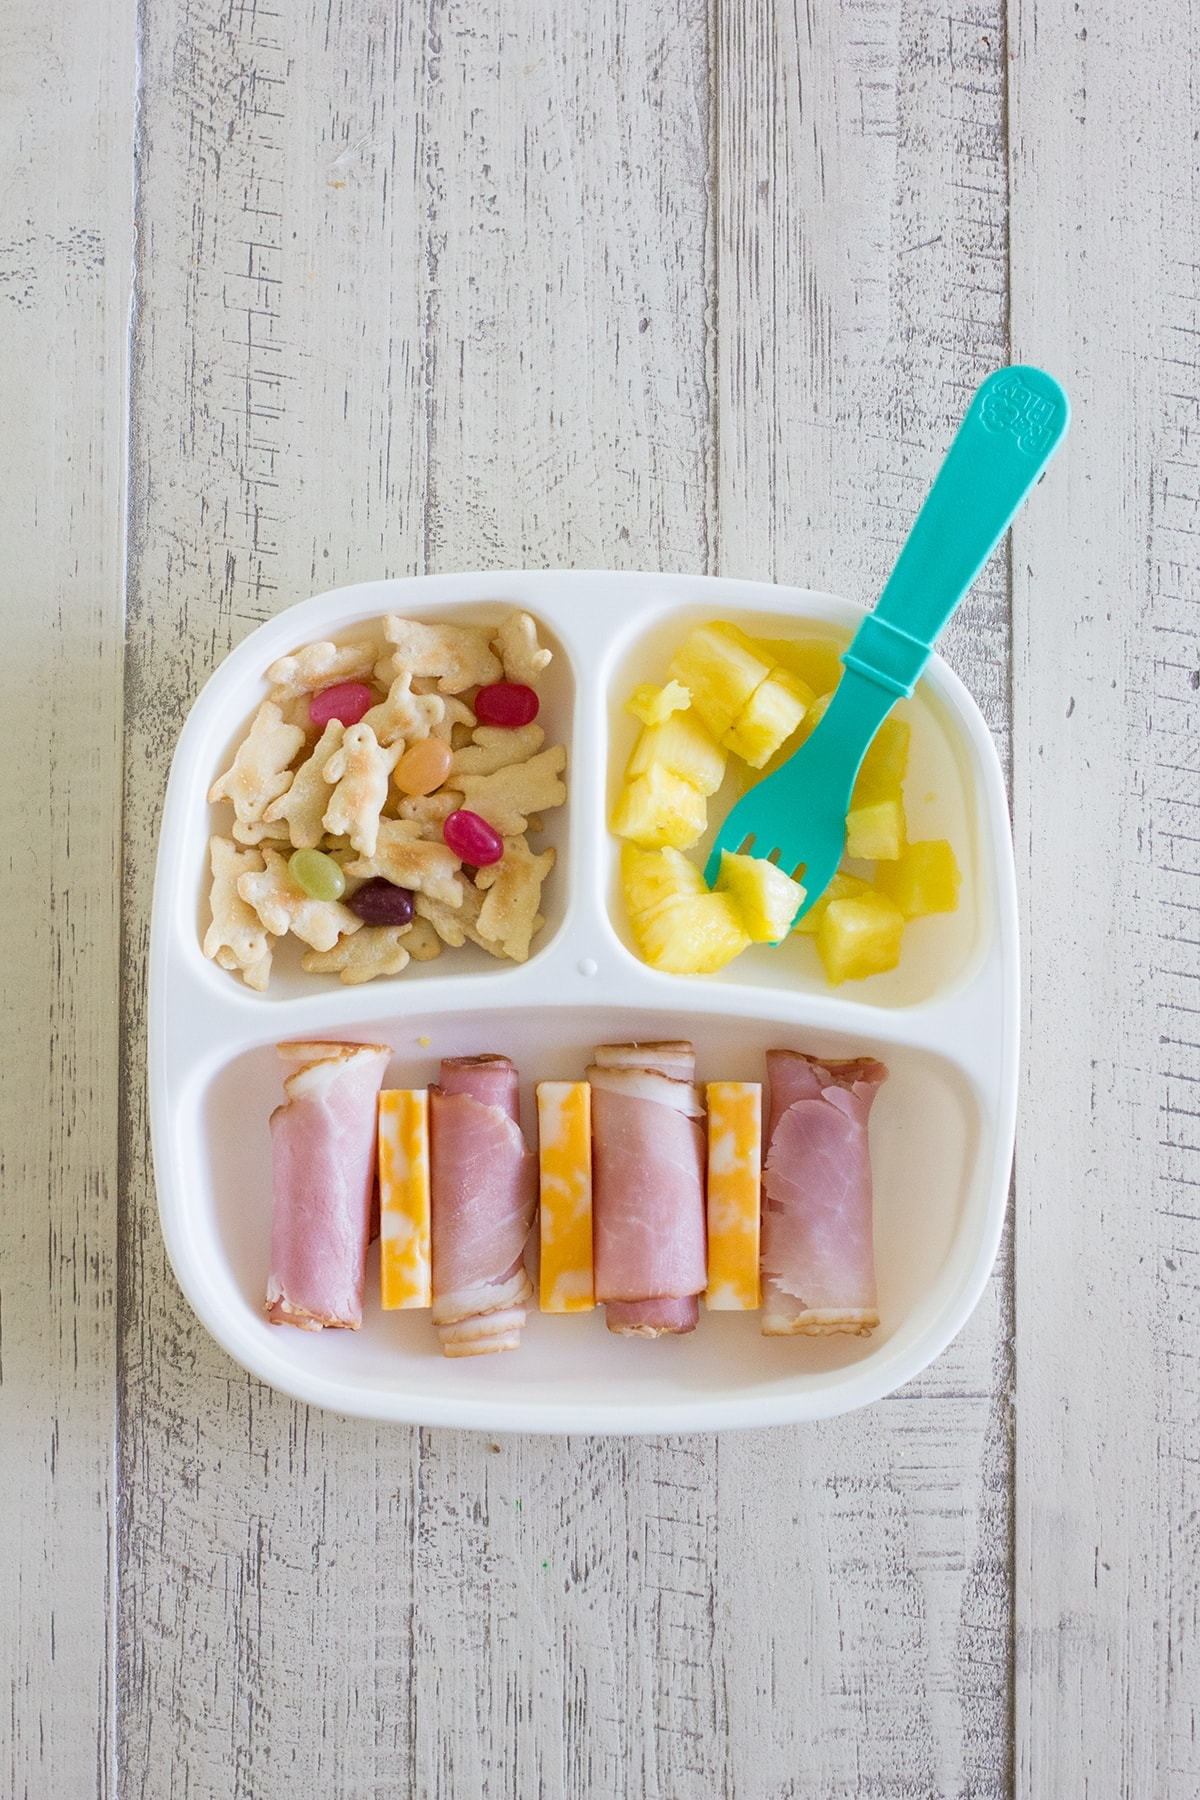 Toddler Meals What I Fed the Twins